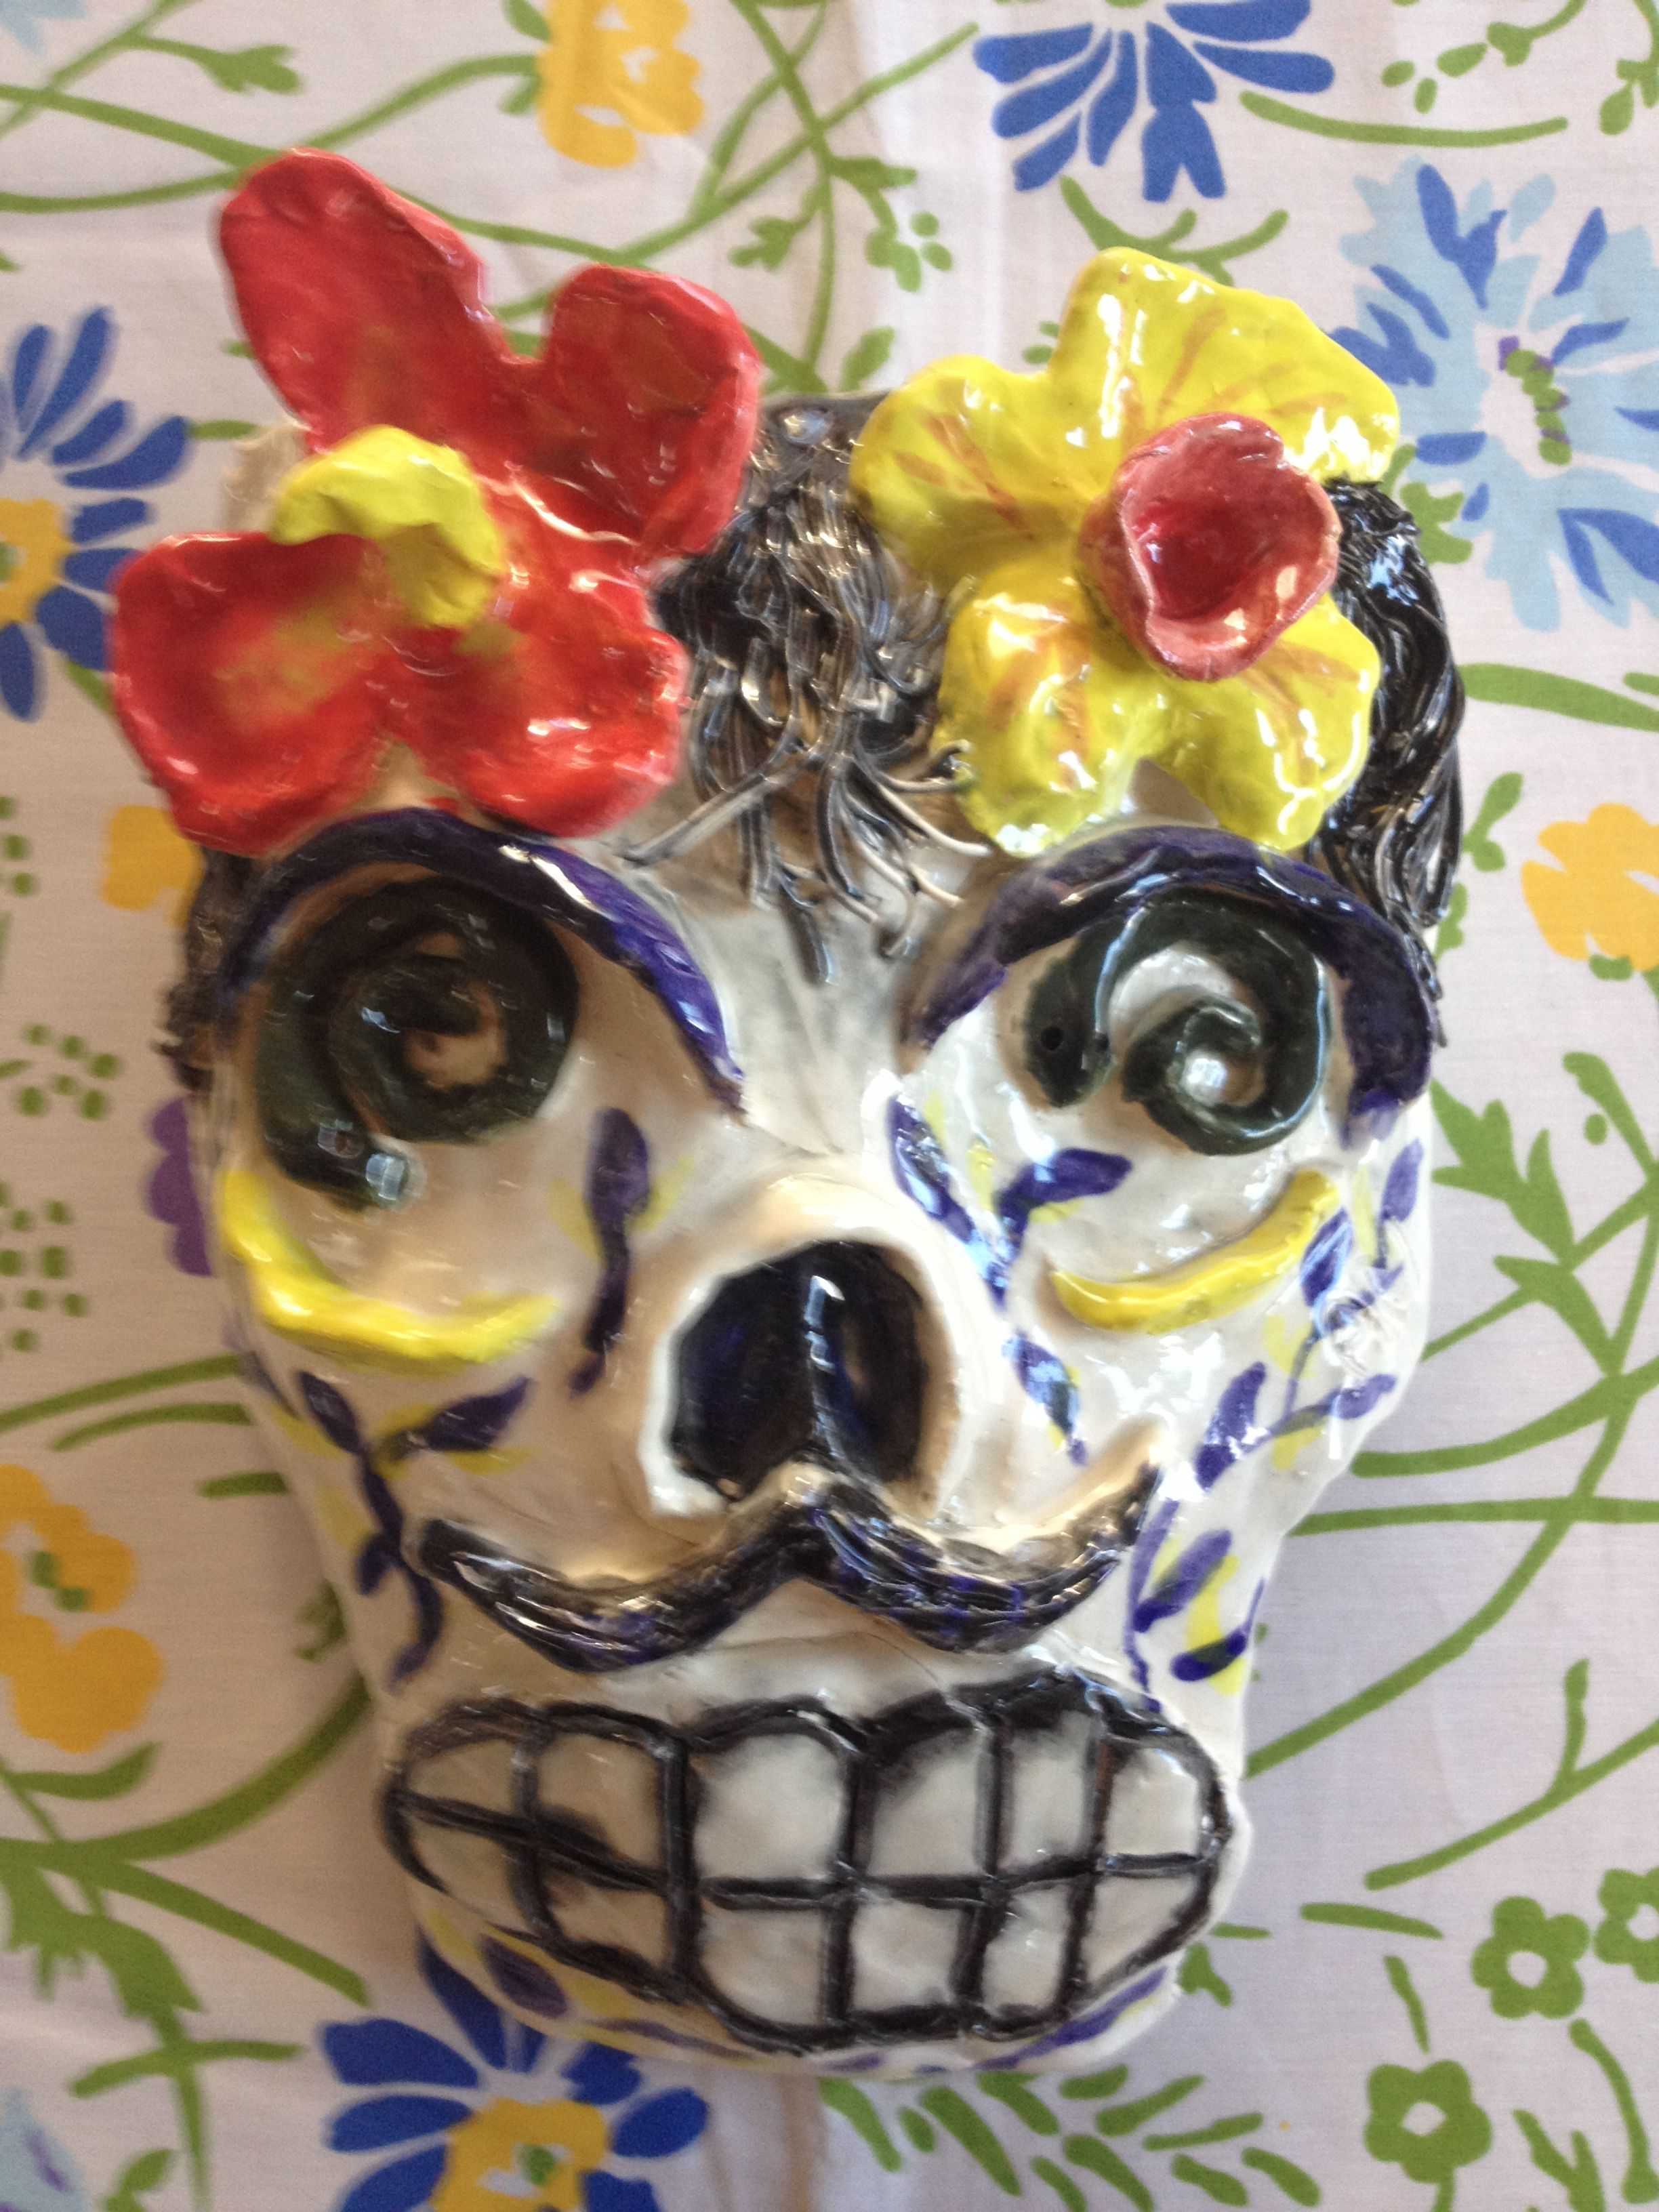 My Calavera clay mask, made Sept. 2013